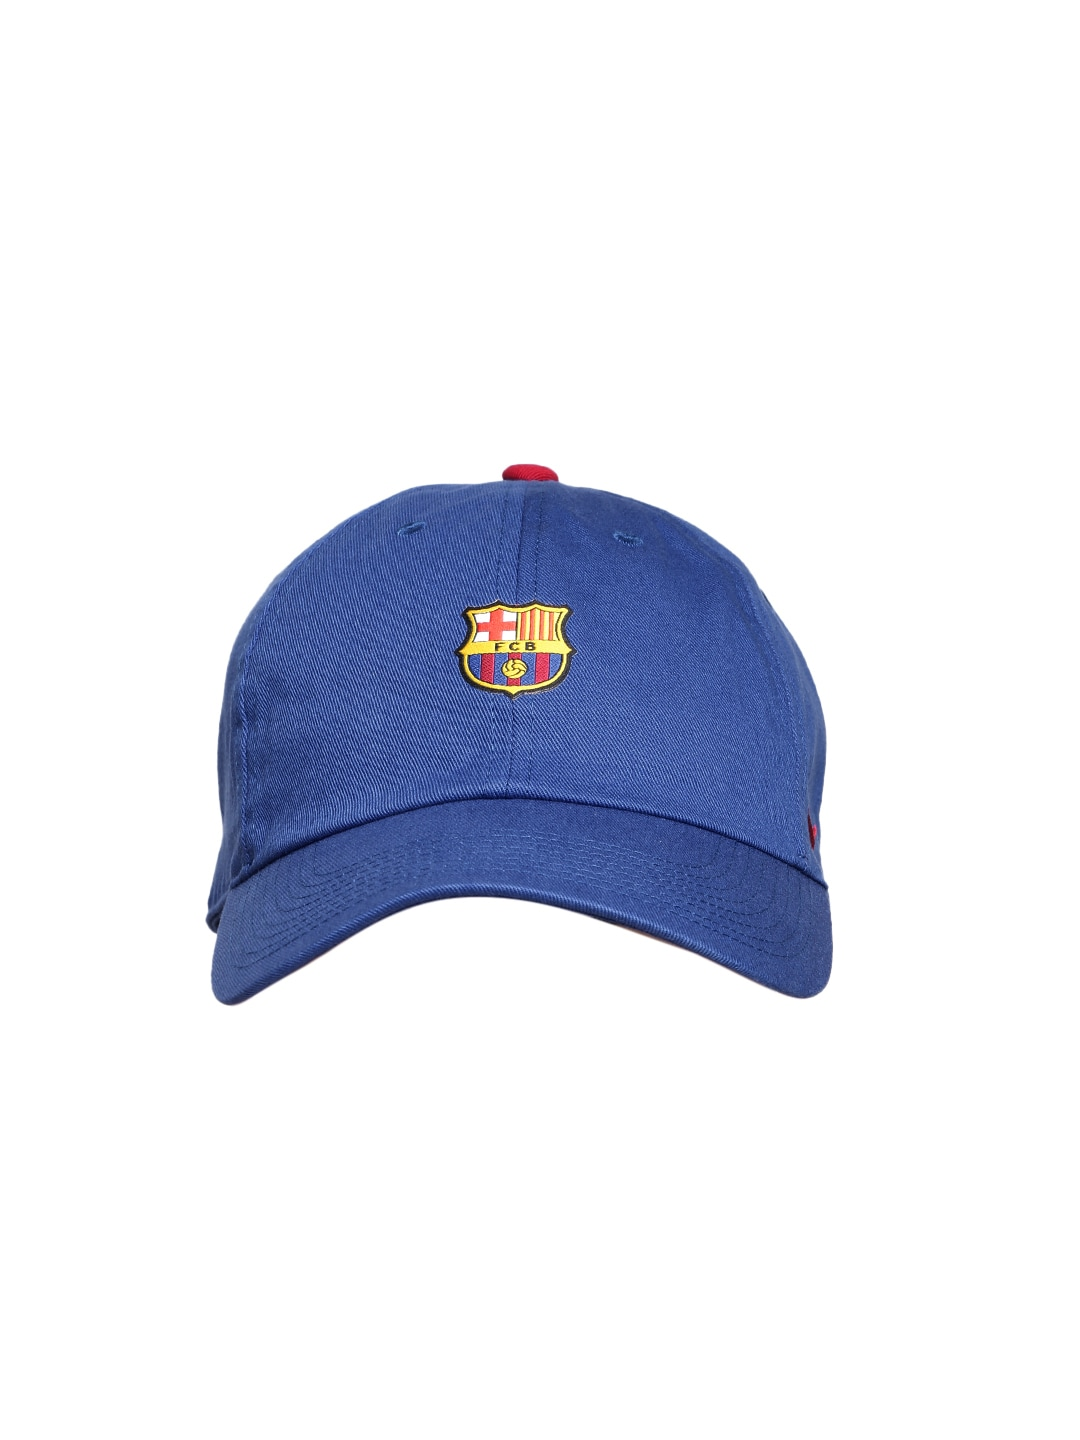 ... hat maroon by nike 4138e 508b2 usa caps buy caps for men women kids  online myntra a337a b089a ... 2dc86f5ddc4a